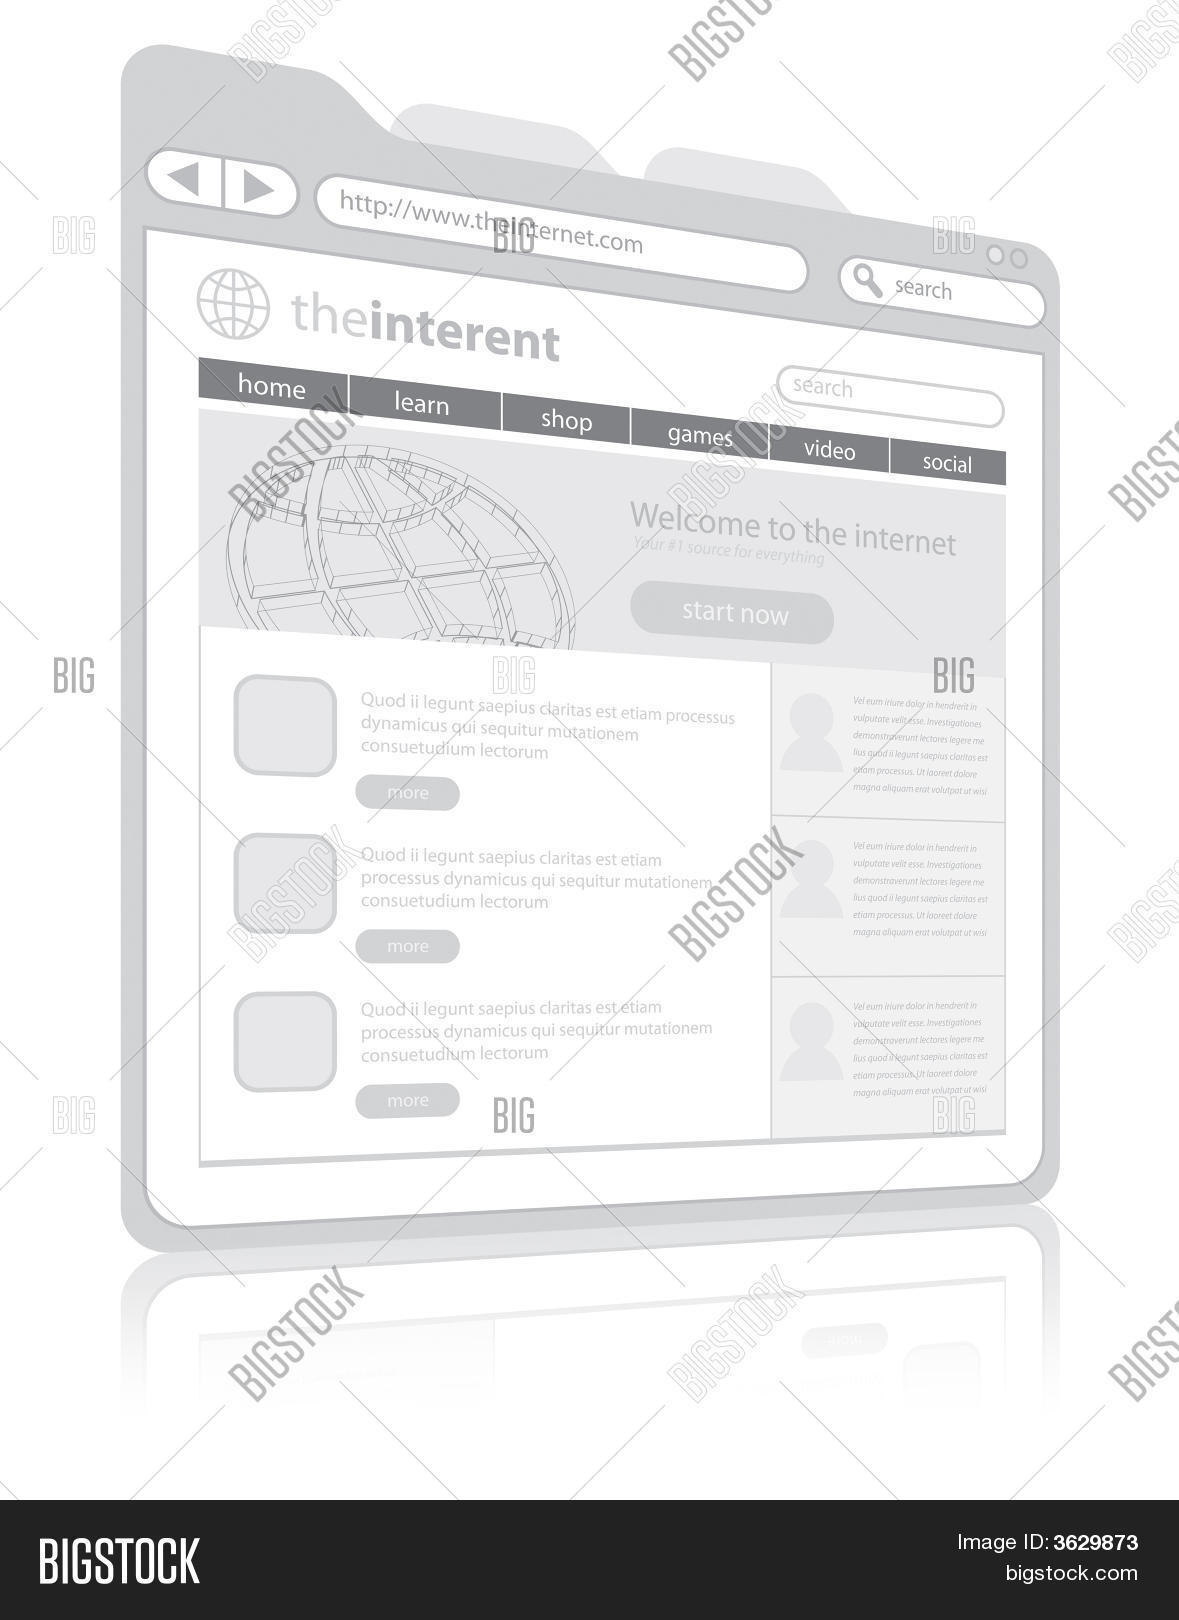 Web Browser Image Photo Free Trial Bigstock What Is A Diagram Create Lightbox